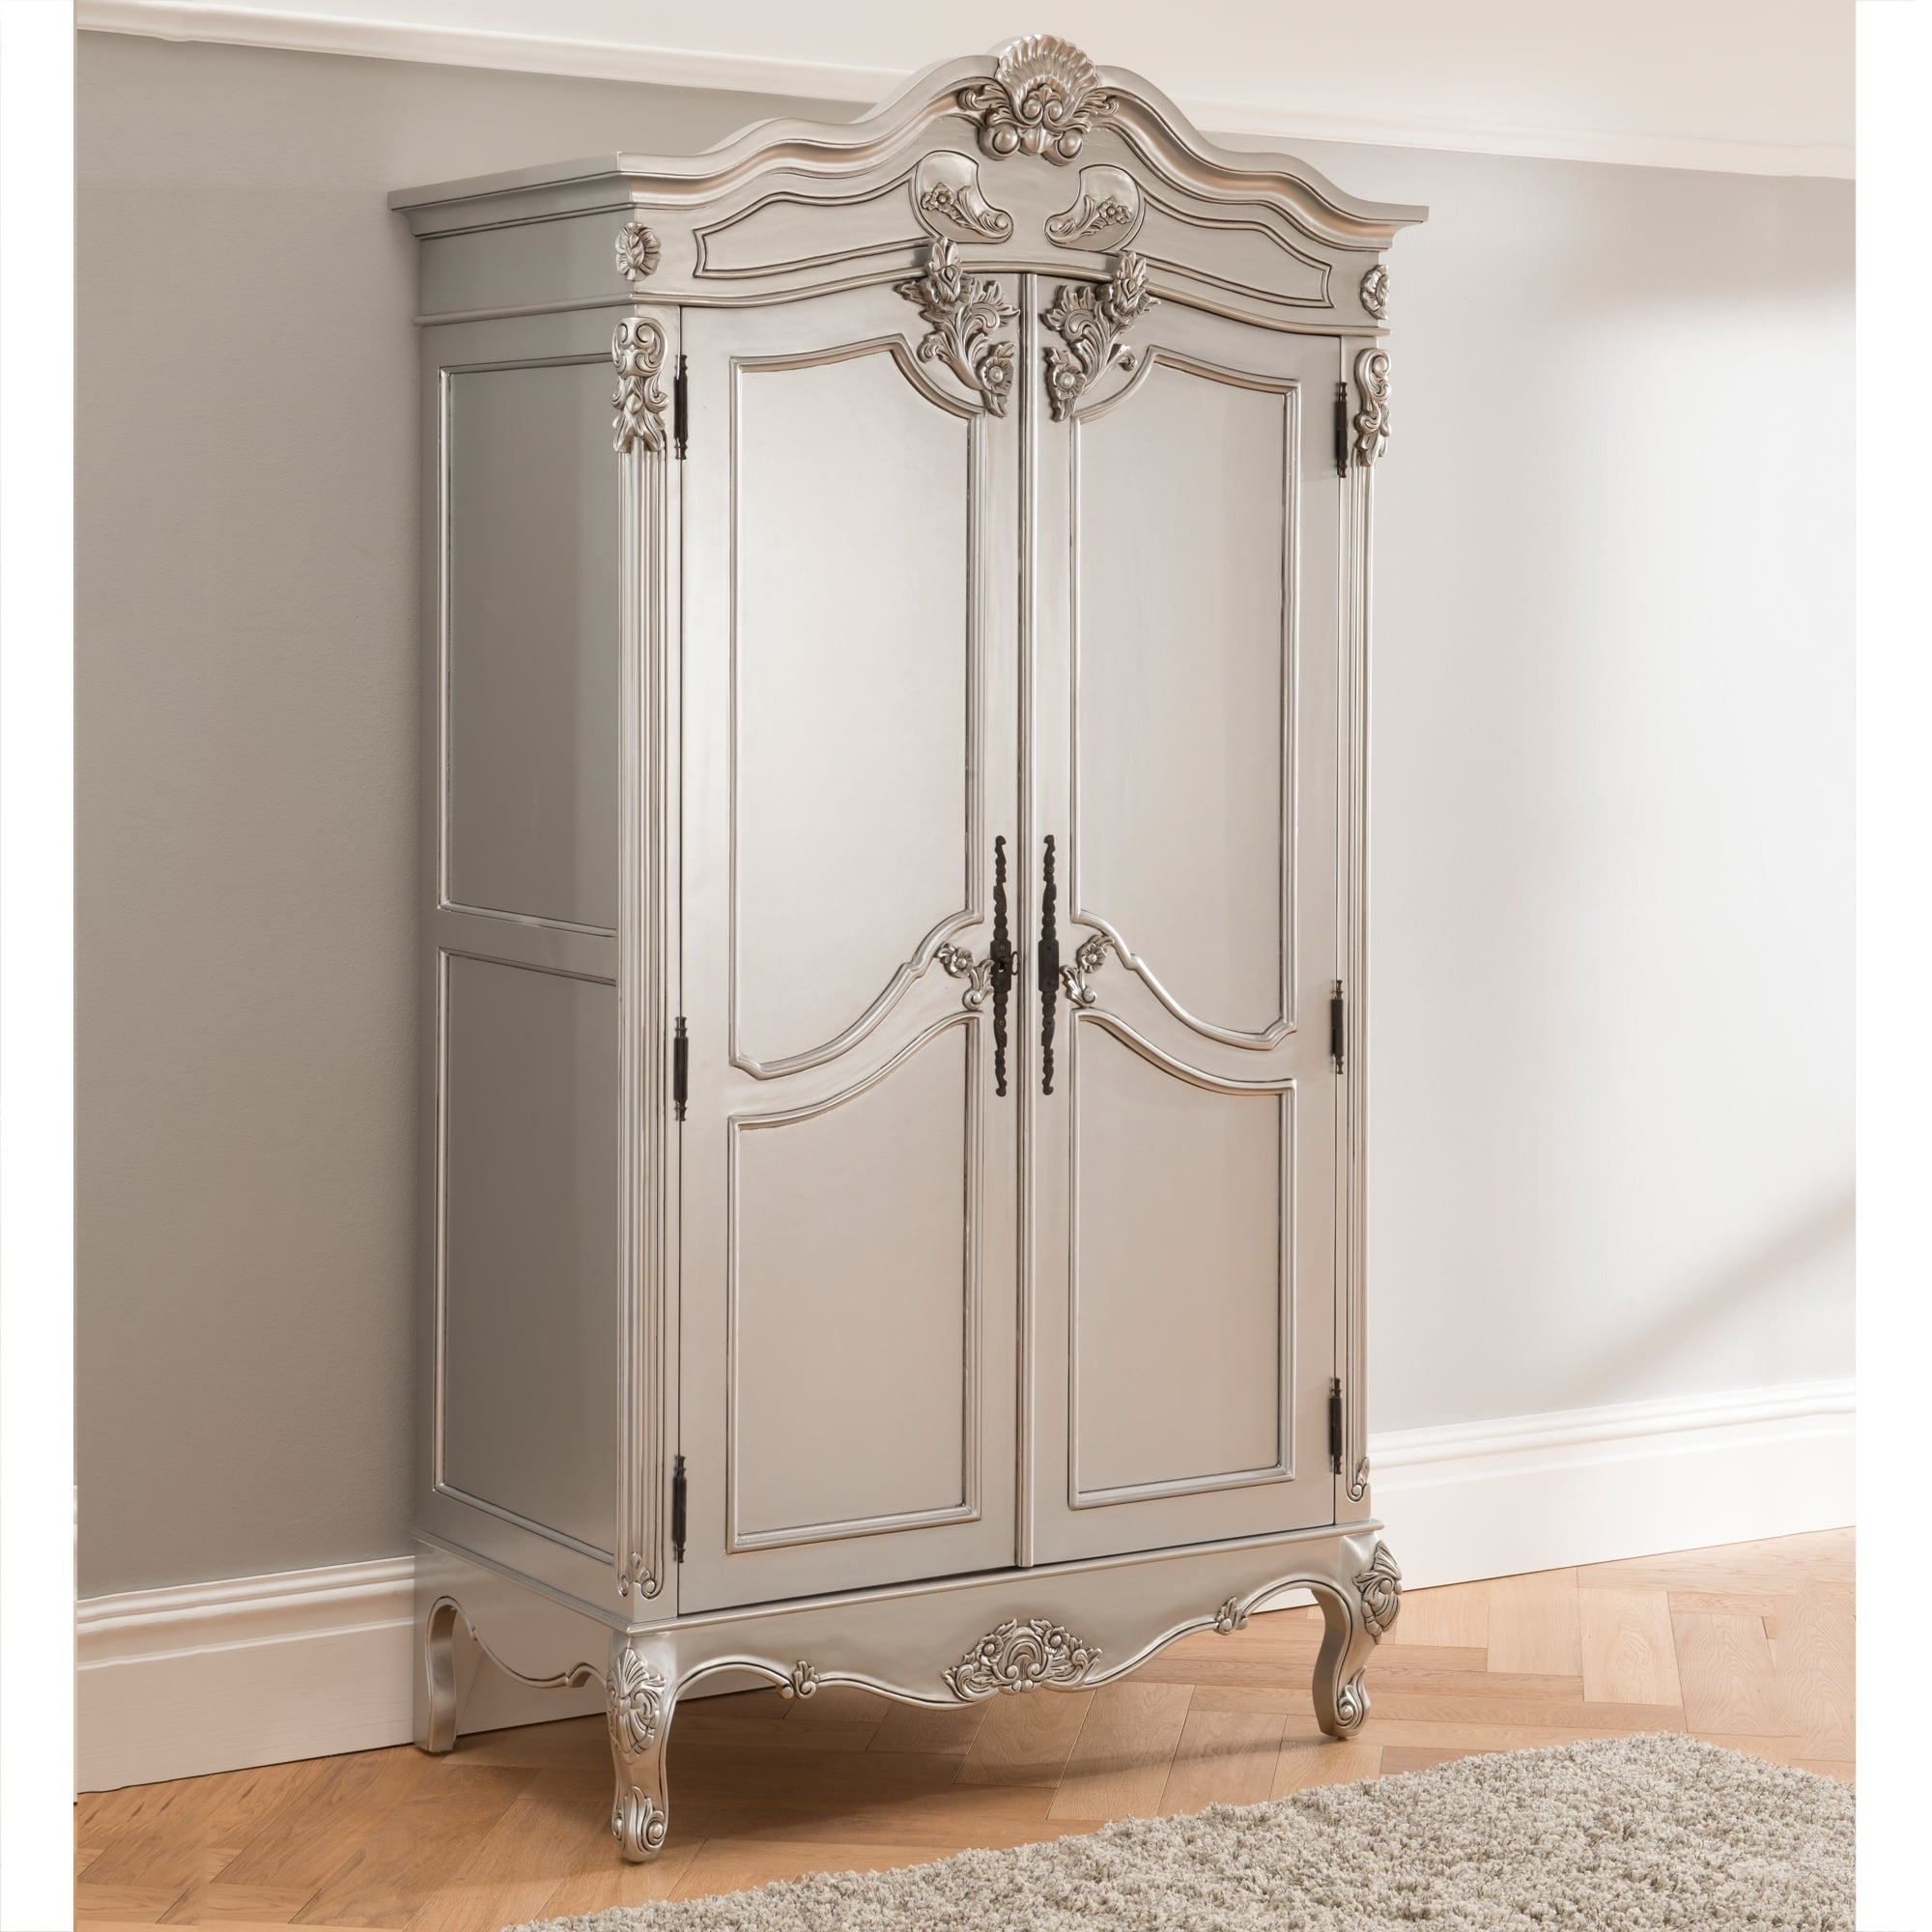 Most Recently Released Baroque Antique French Wardrobe Works Exceptional Alongside Our Within Chic Wardrobes (View 12 of 15)